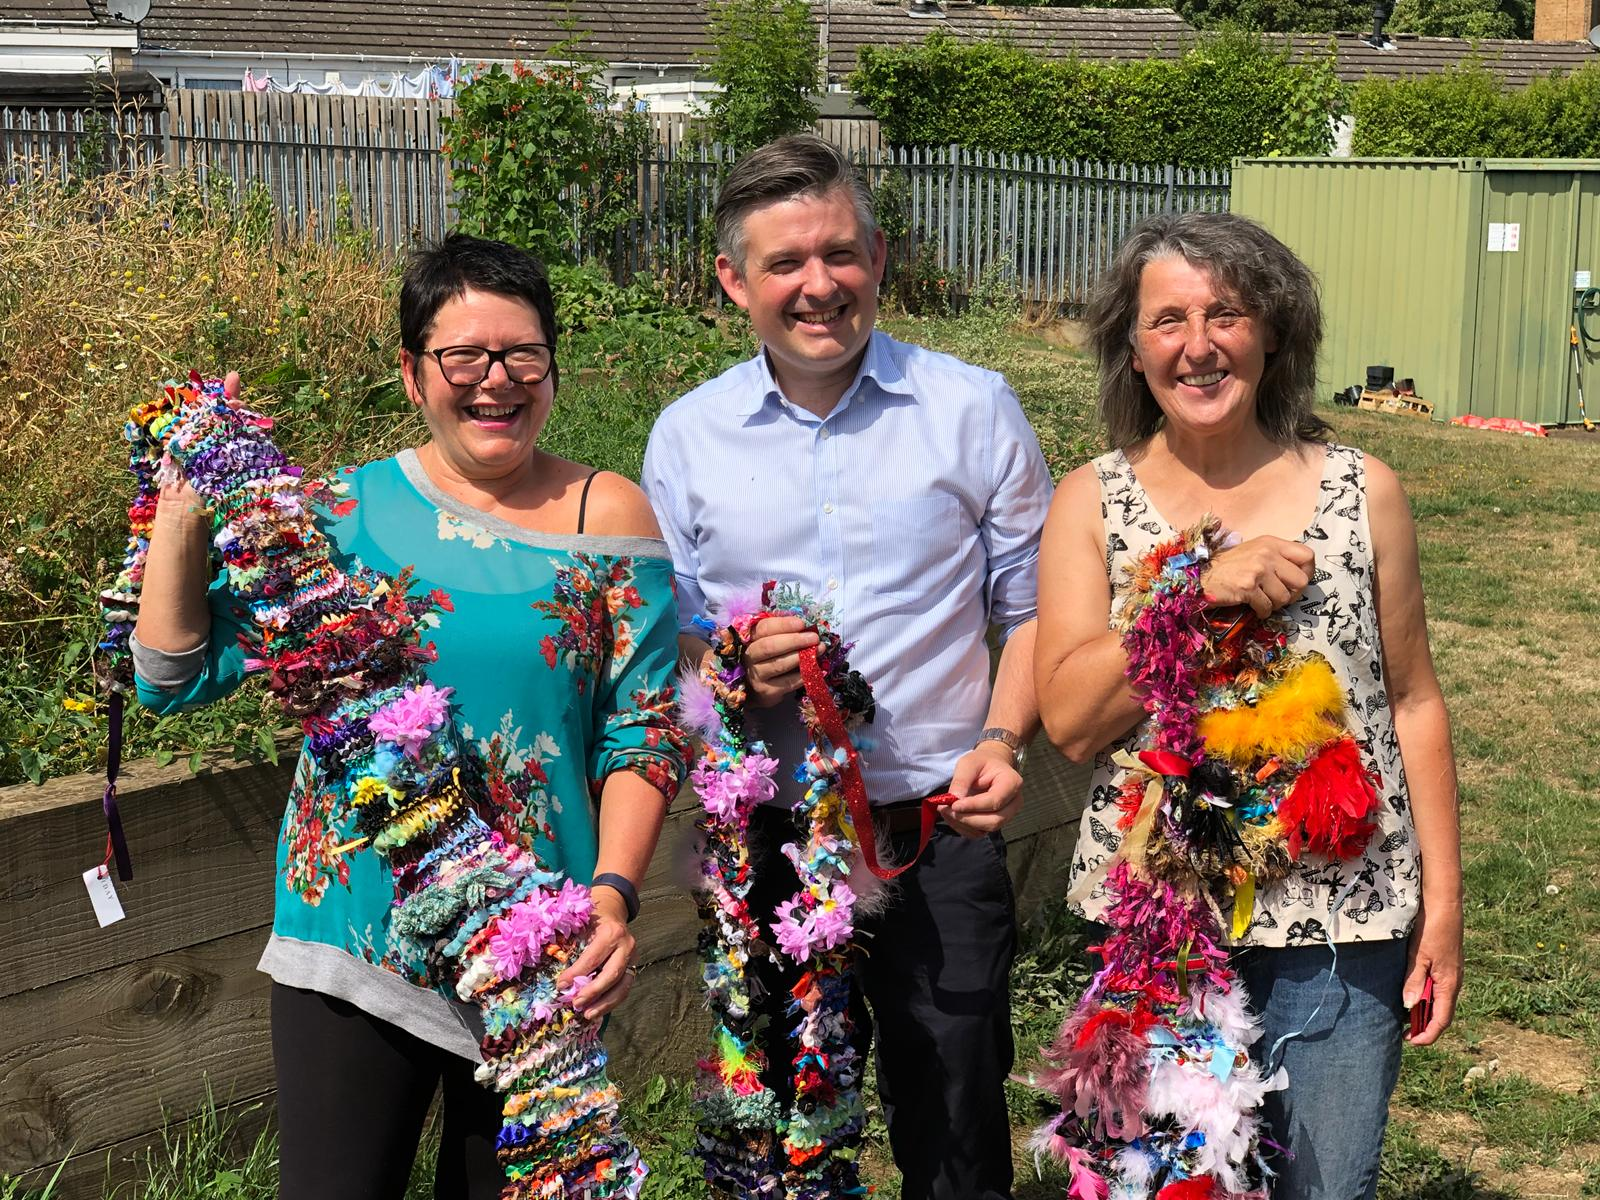 Jon Ashworth was out and about in Eyres Monsell today meeting residents and met up with the local Councillors - Friday 3 August 2018